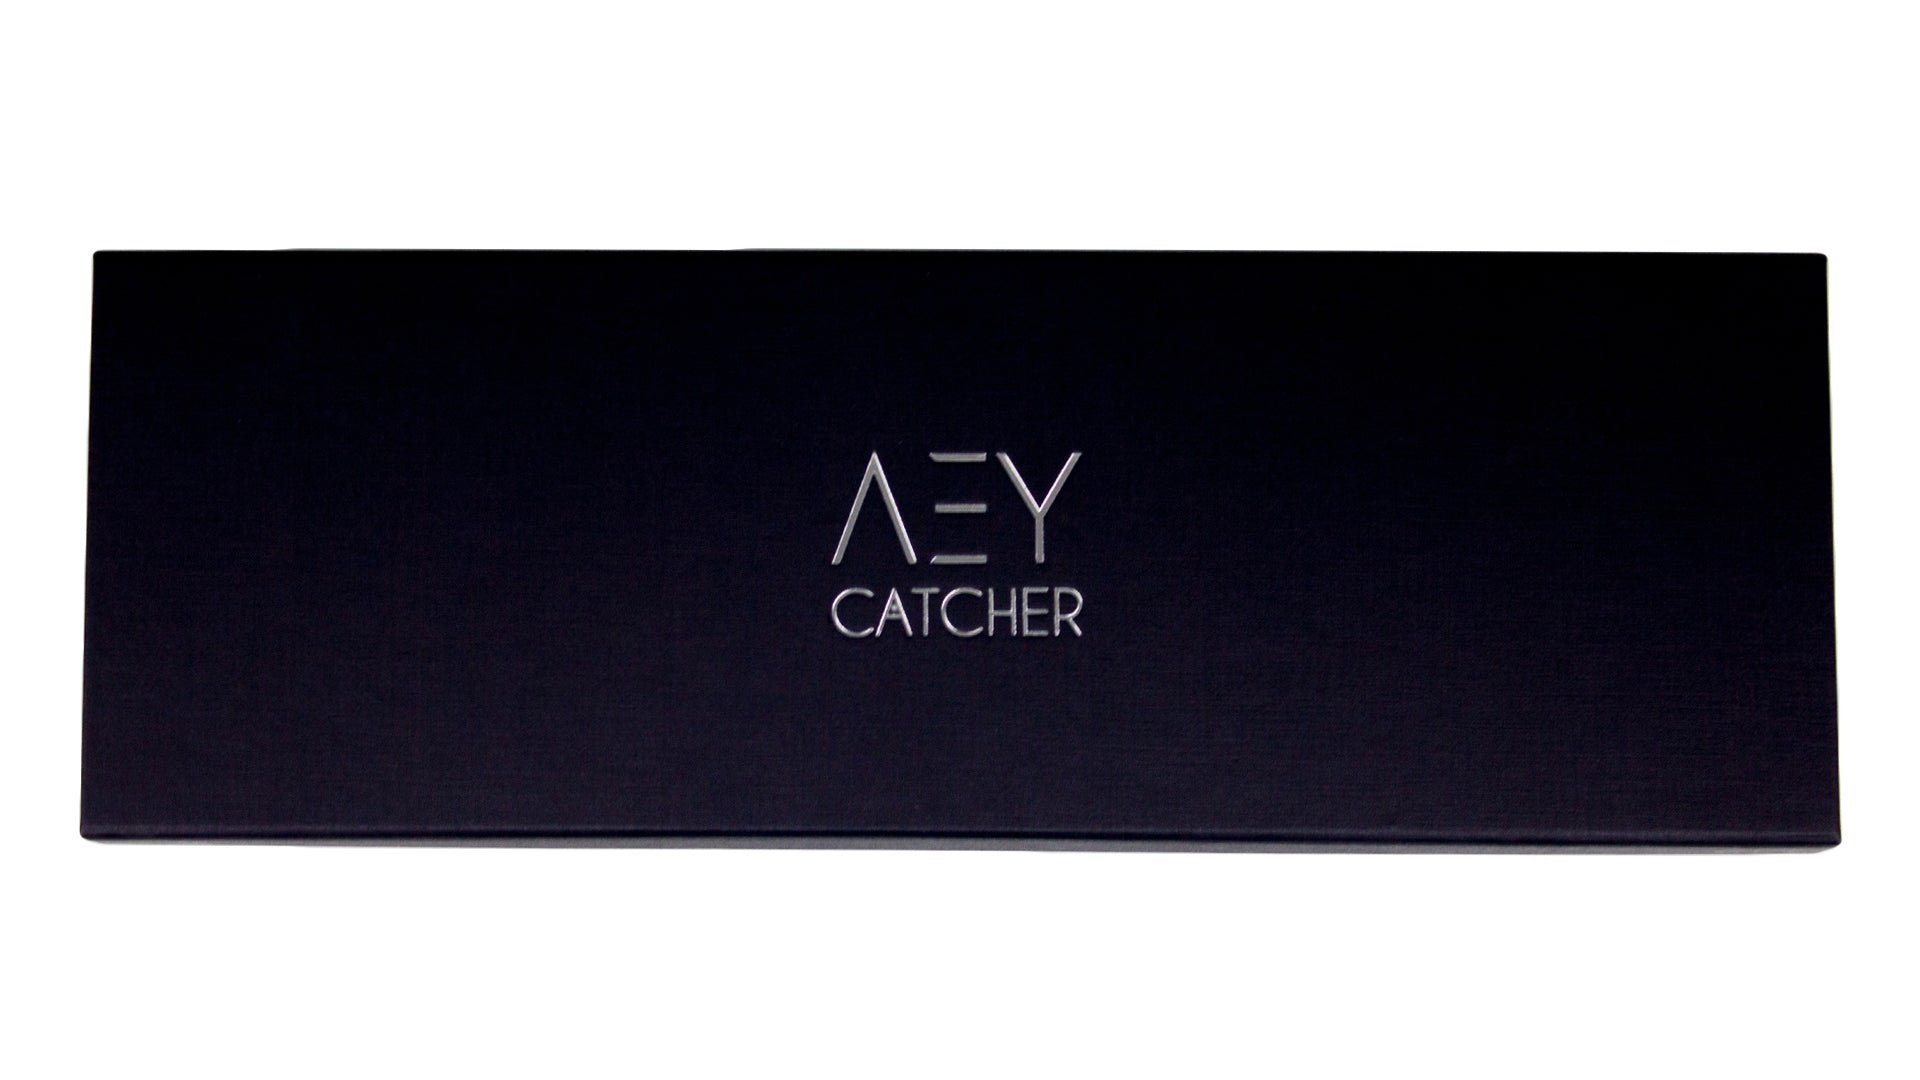 [playing_cards] - AEY Catcher